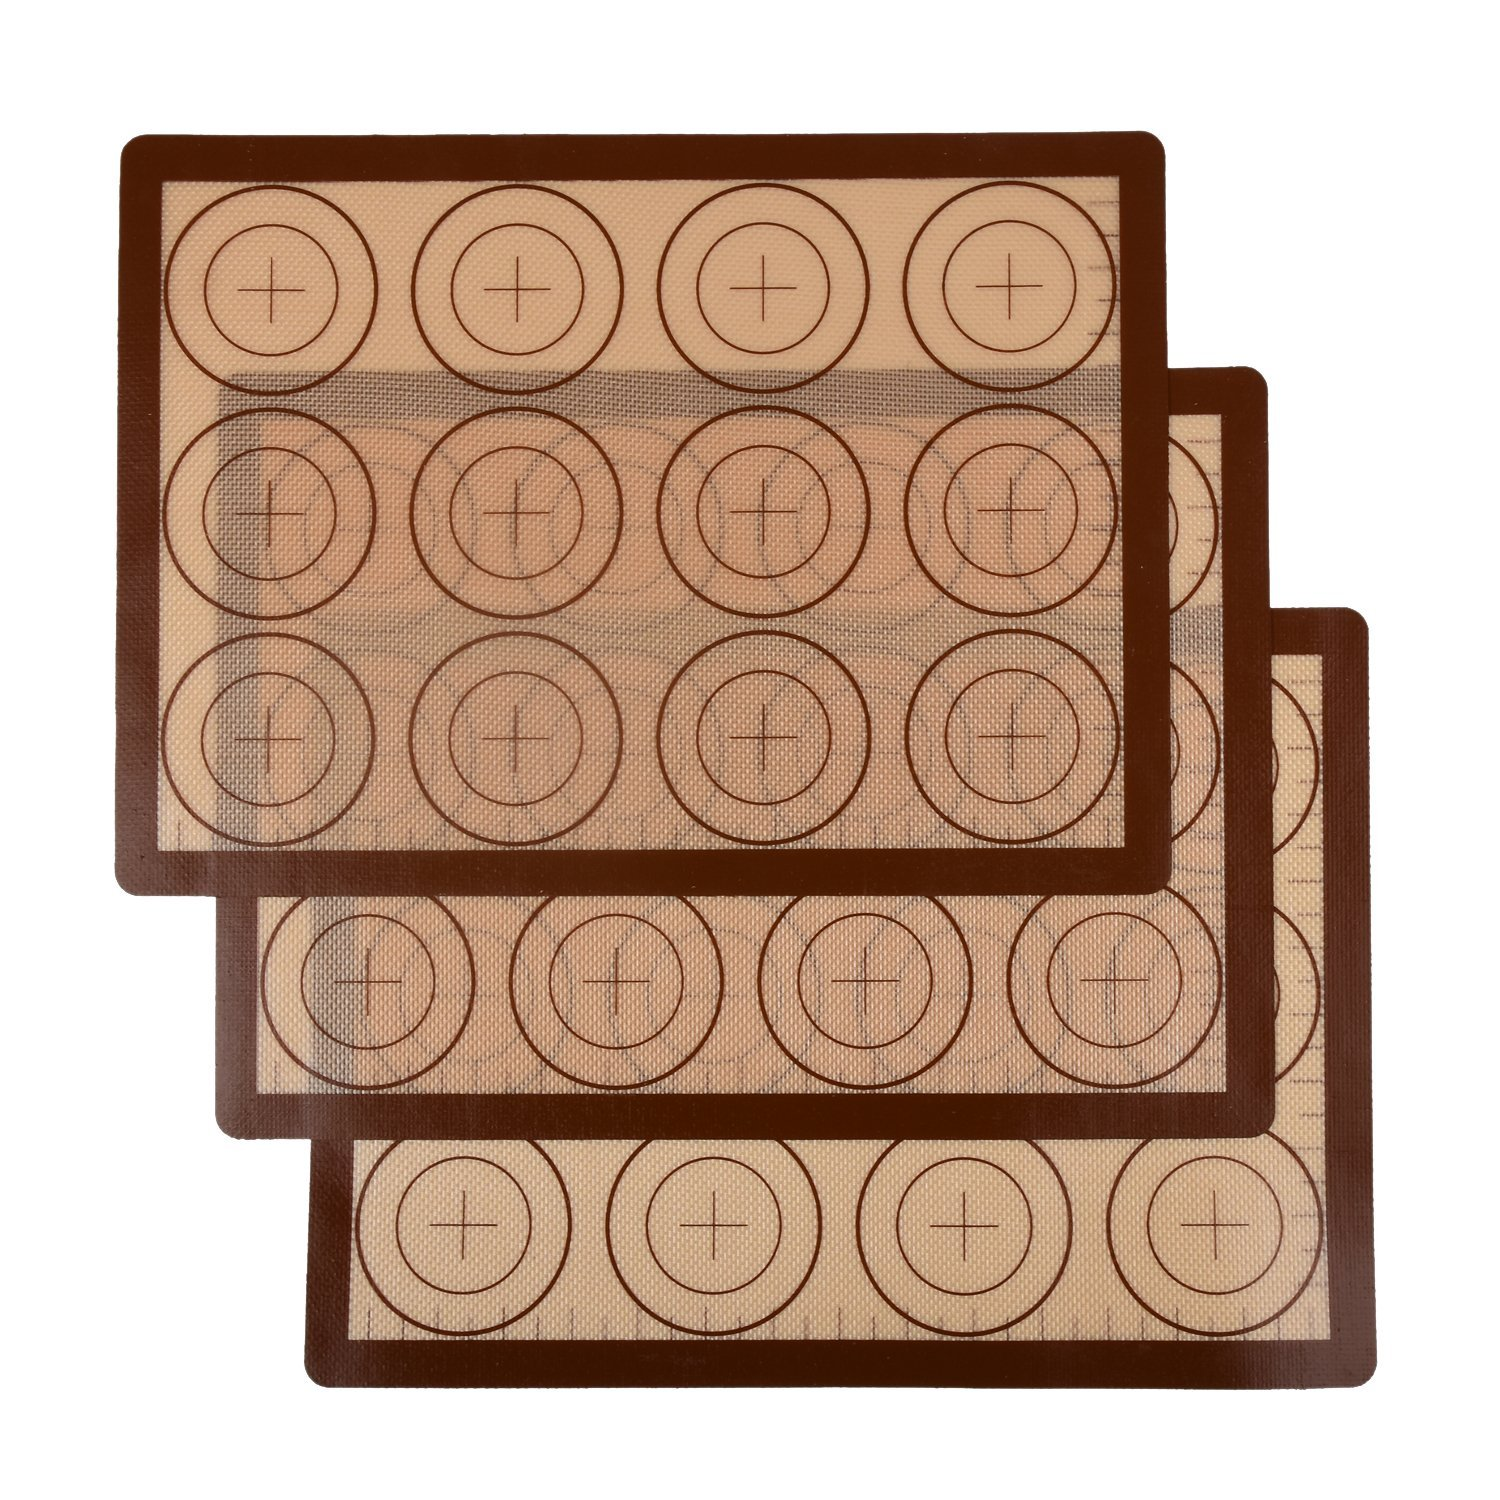 Seamersey Silicone Baking Mat Sheet Set - Set of 3 Sheet - Non-Stick Silicon Liner for Bake Pans & Rolling with Measurements - Macaron/Pastry/Cookie/Bun/Bread Making(16'' x 11.5'', Brown)